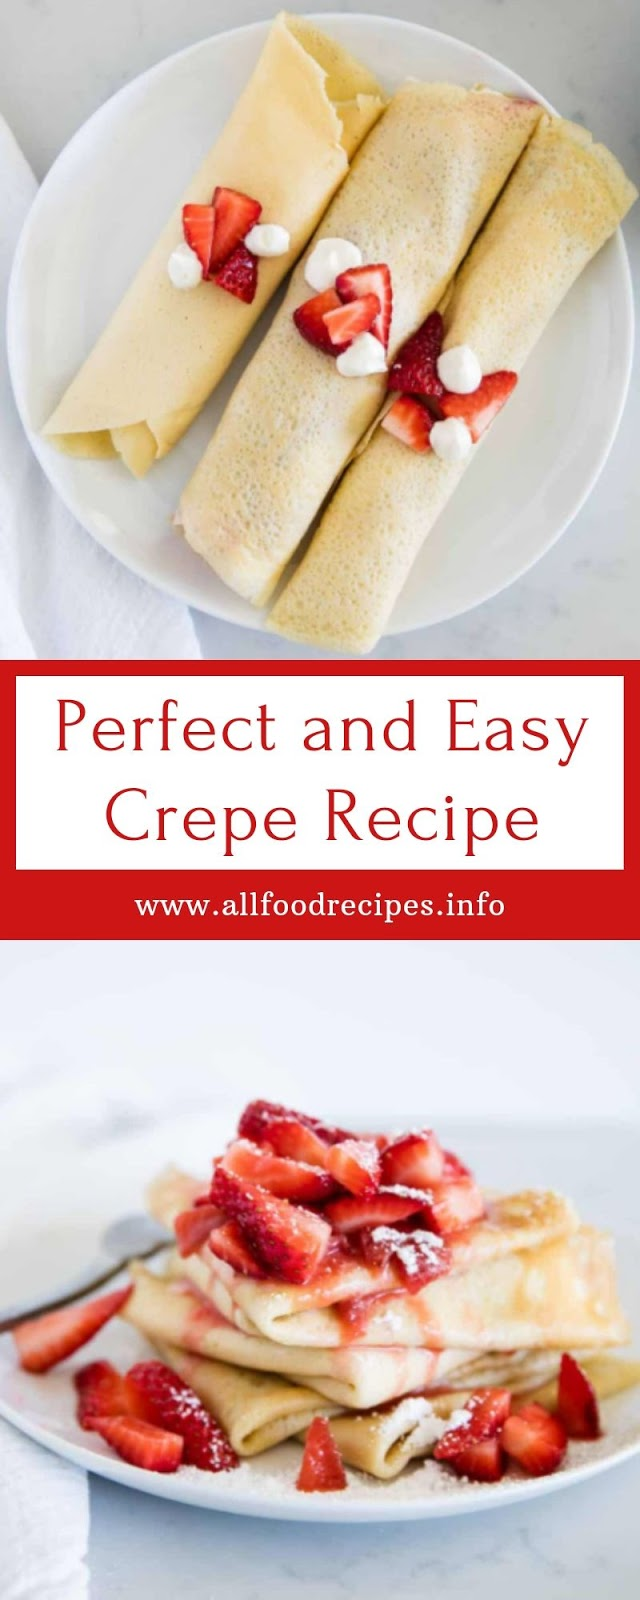 Perfect and Easy Crepe Recipe